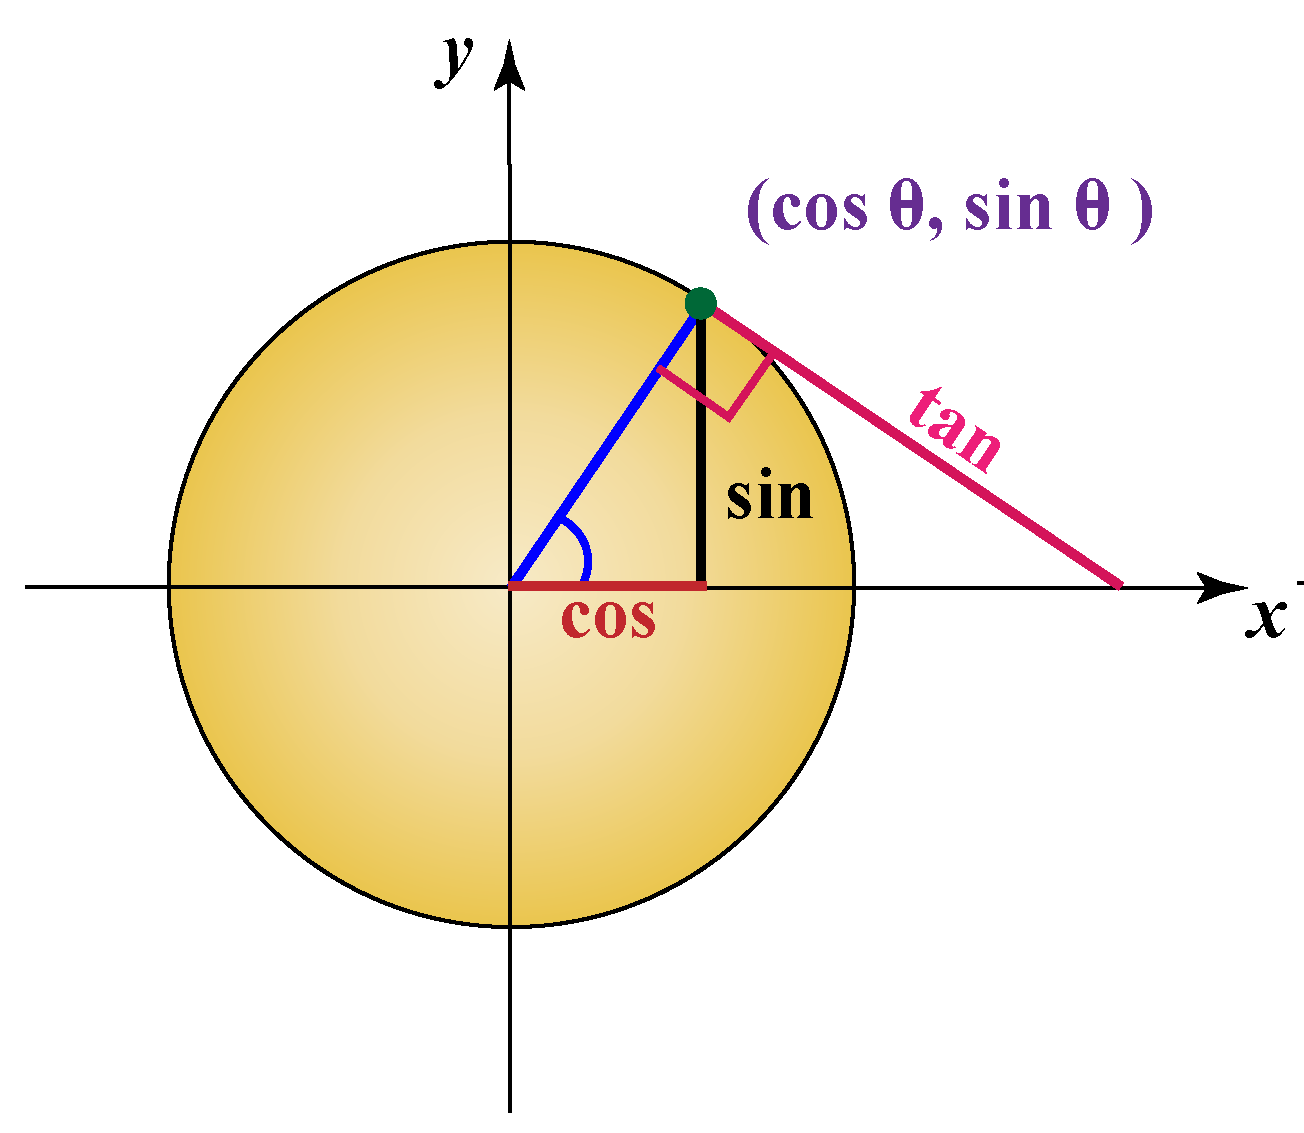 Unit circle trigonometry - the centre lies at (0,0) and the radius is 1 unit. We will apply the Pythagoras theorem to get the values of sin and cos.